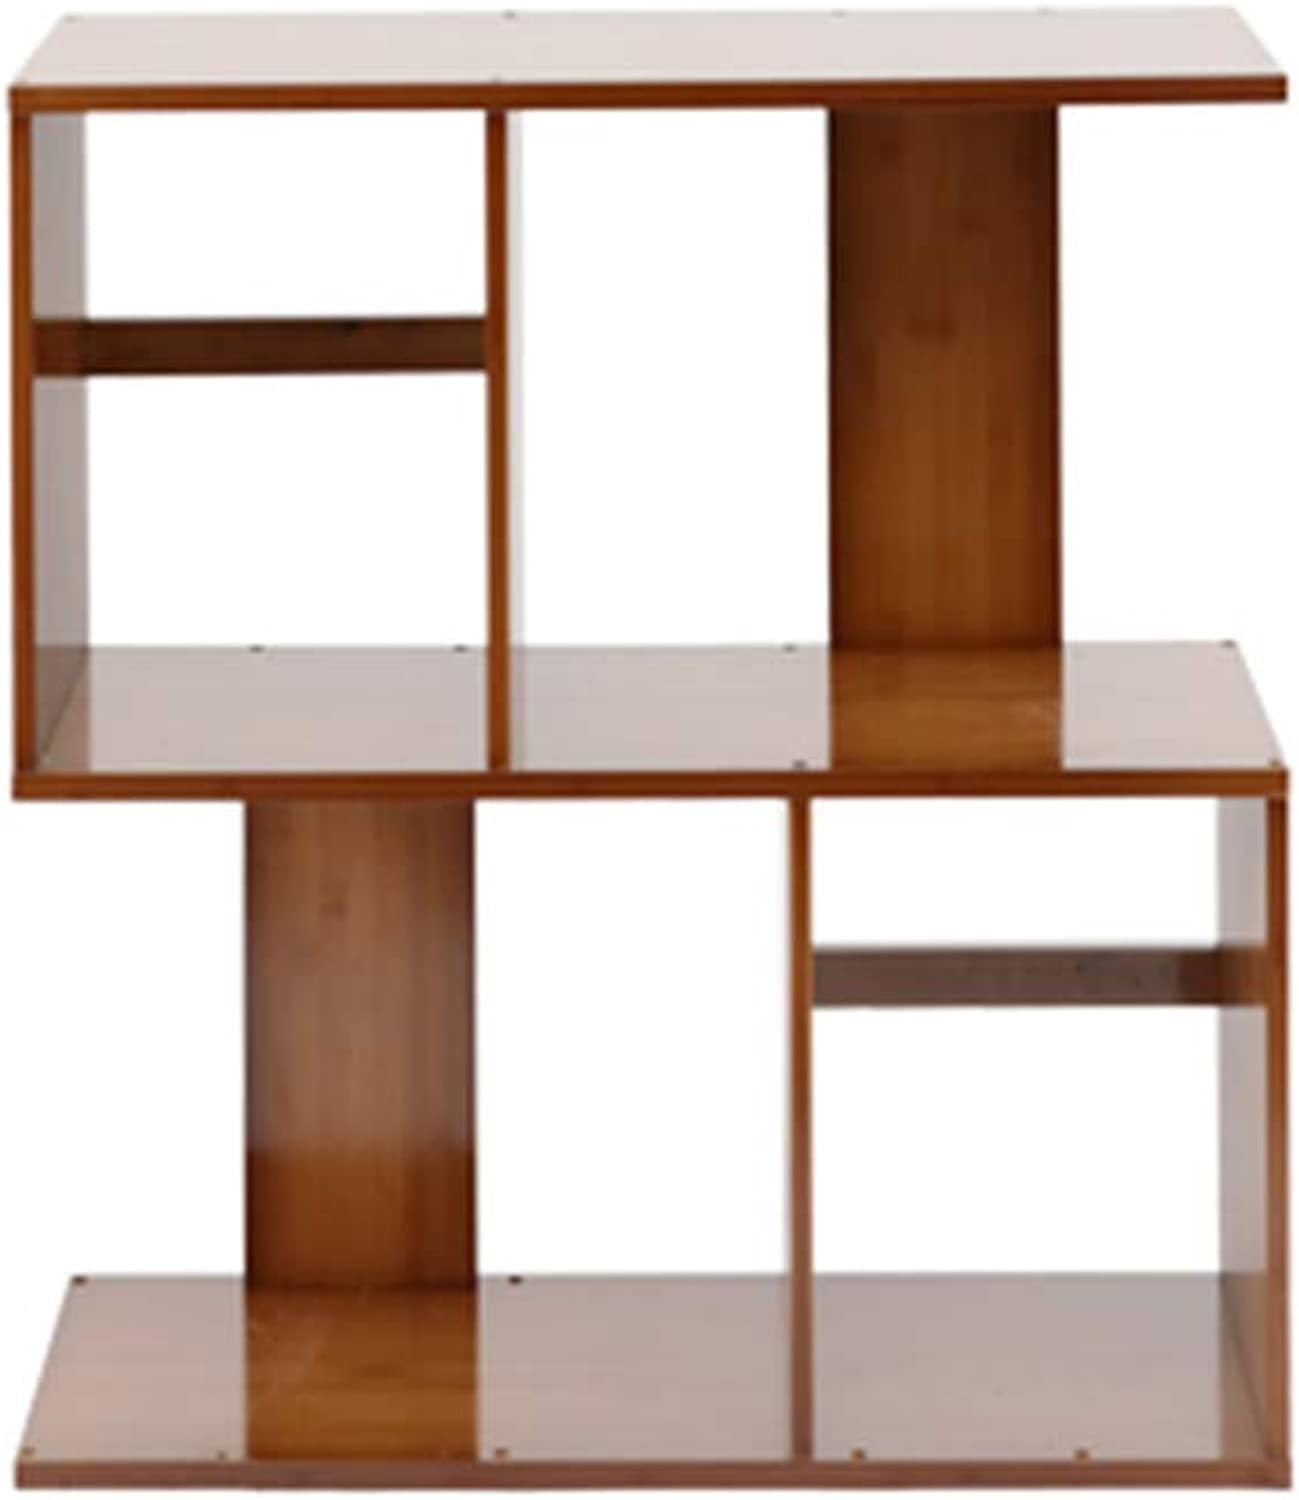 Xiaomei,Bookcases Bamboo Shelf Simple Rack Living Room Floor Bookcase Creative Small Bookshelf Multi-Size Optional (color   2 Layer, Size   60CM)